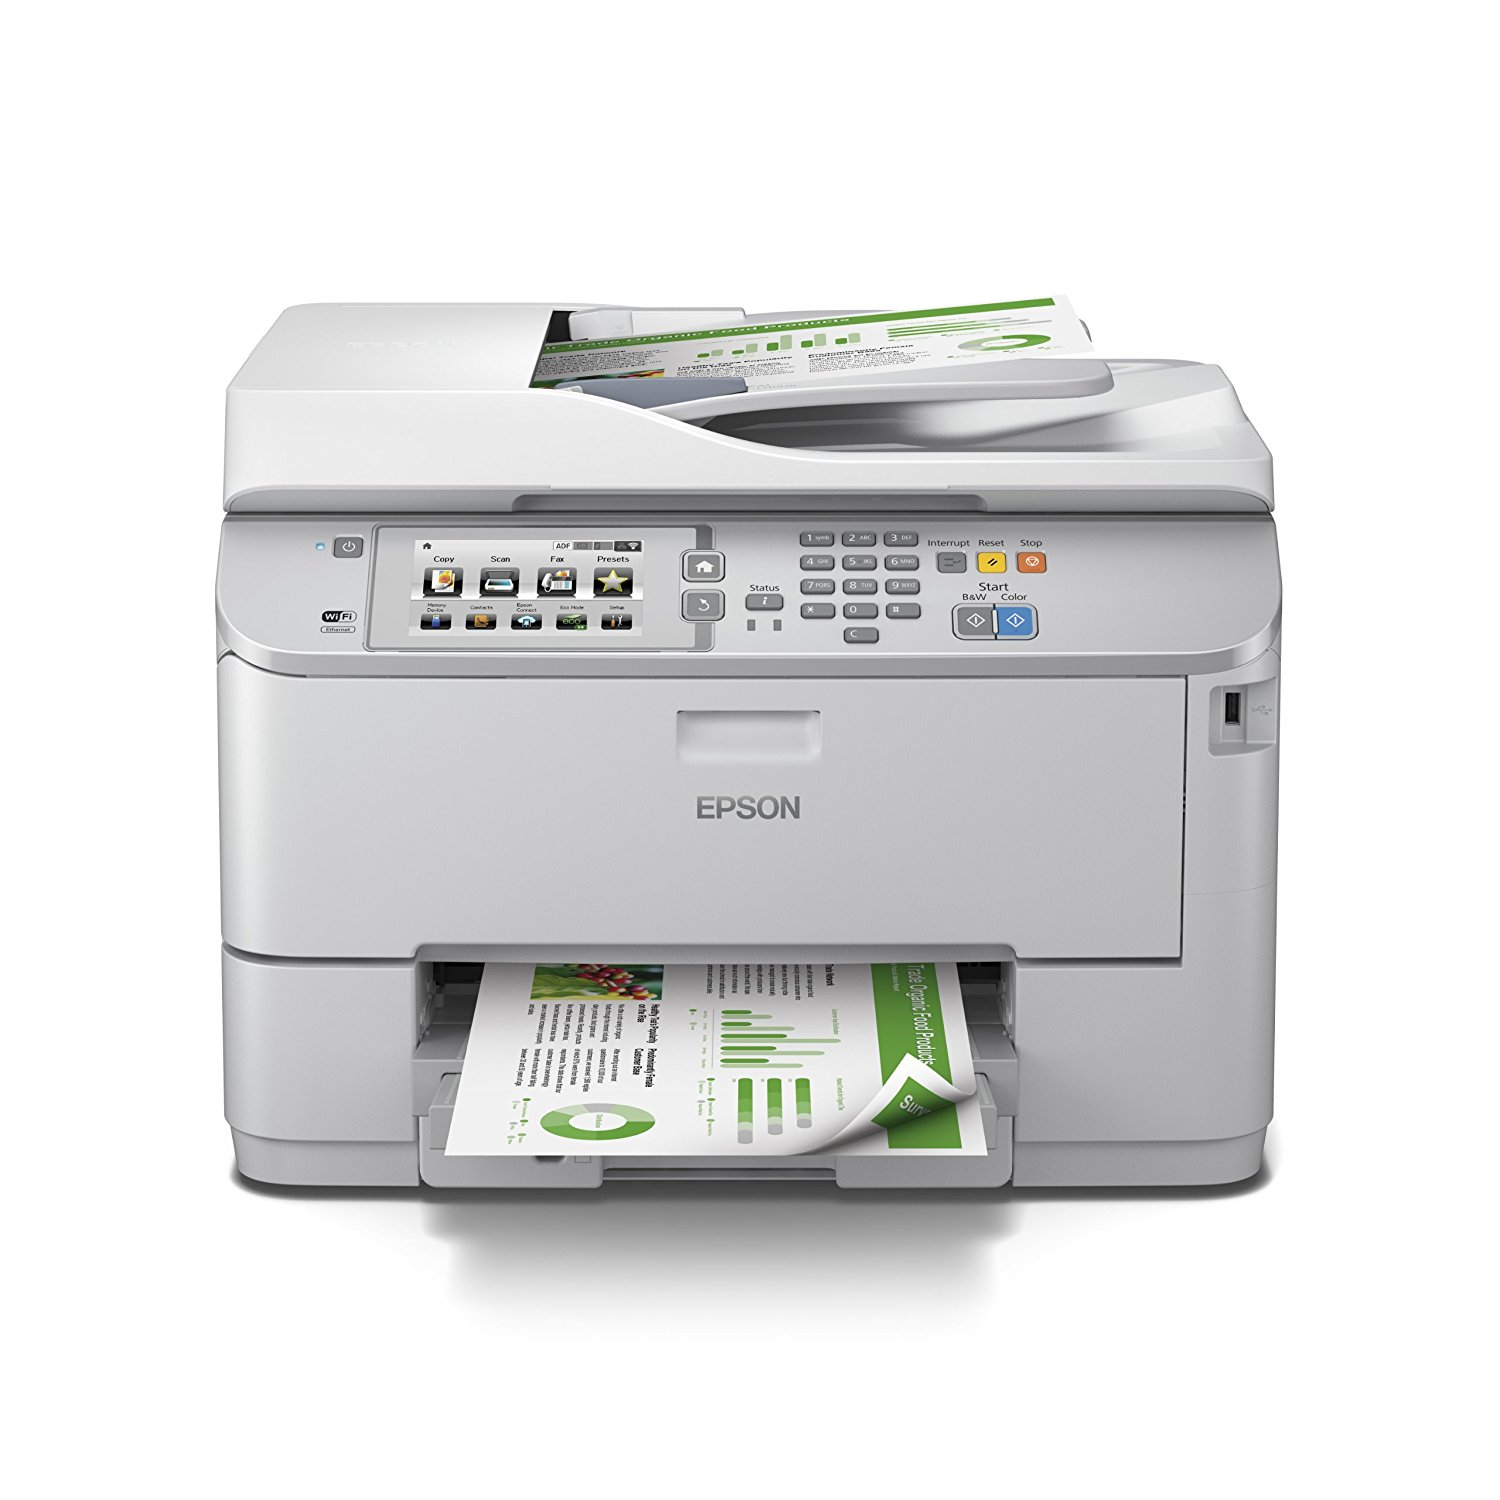 Epson Photo R Driver Download Manual and Printers support